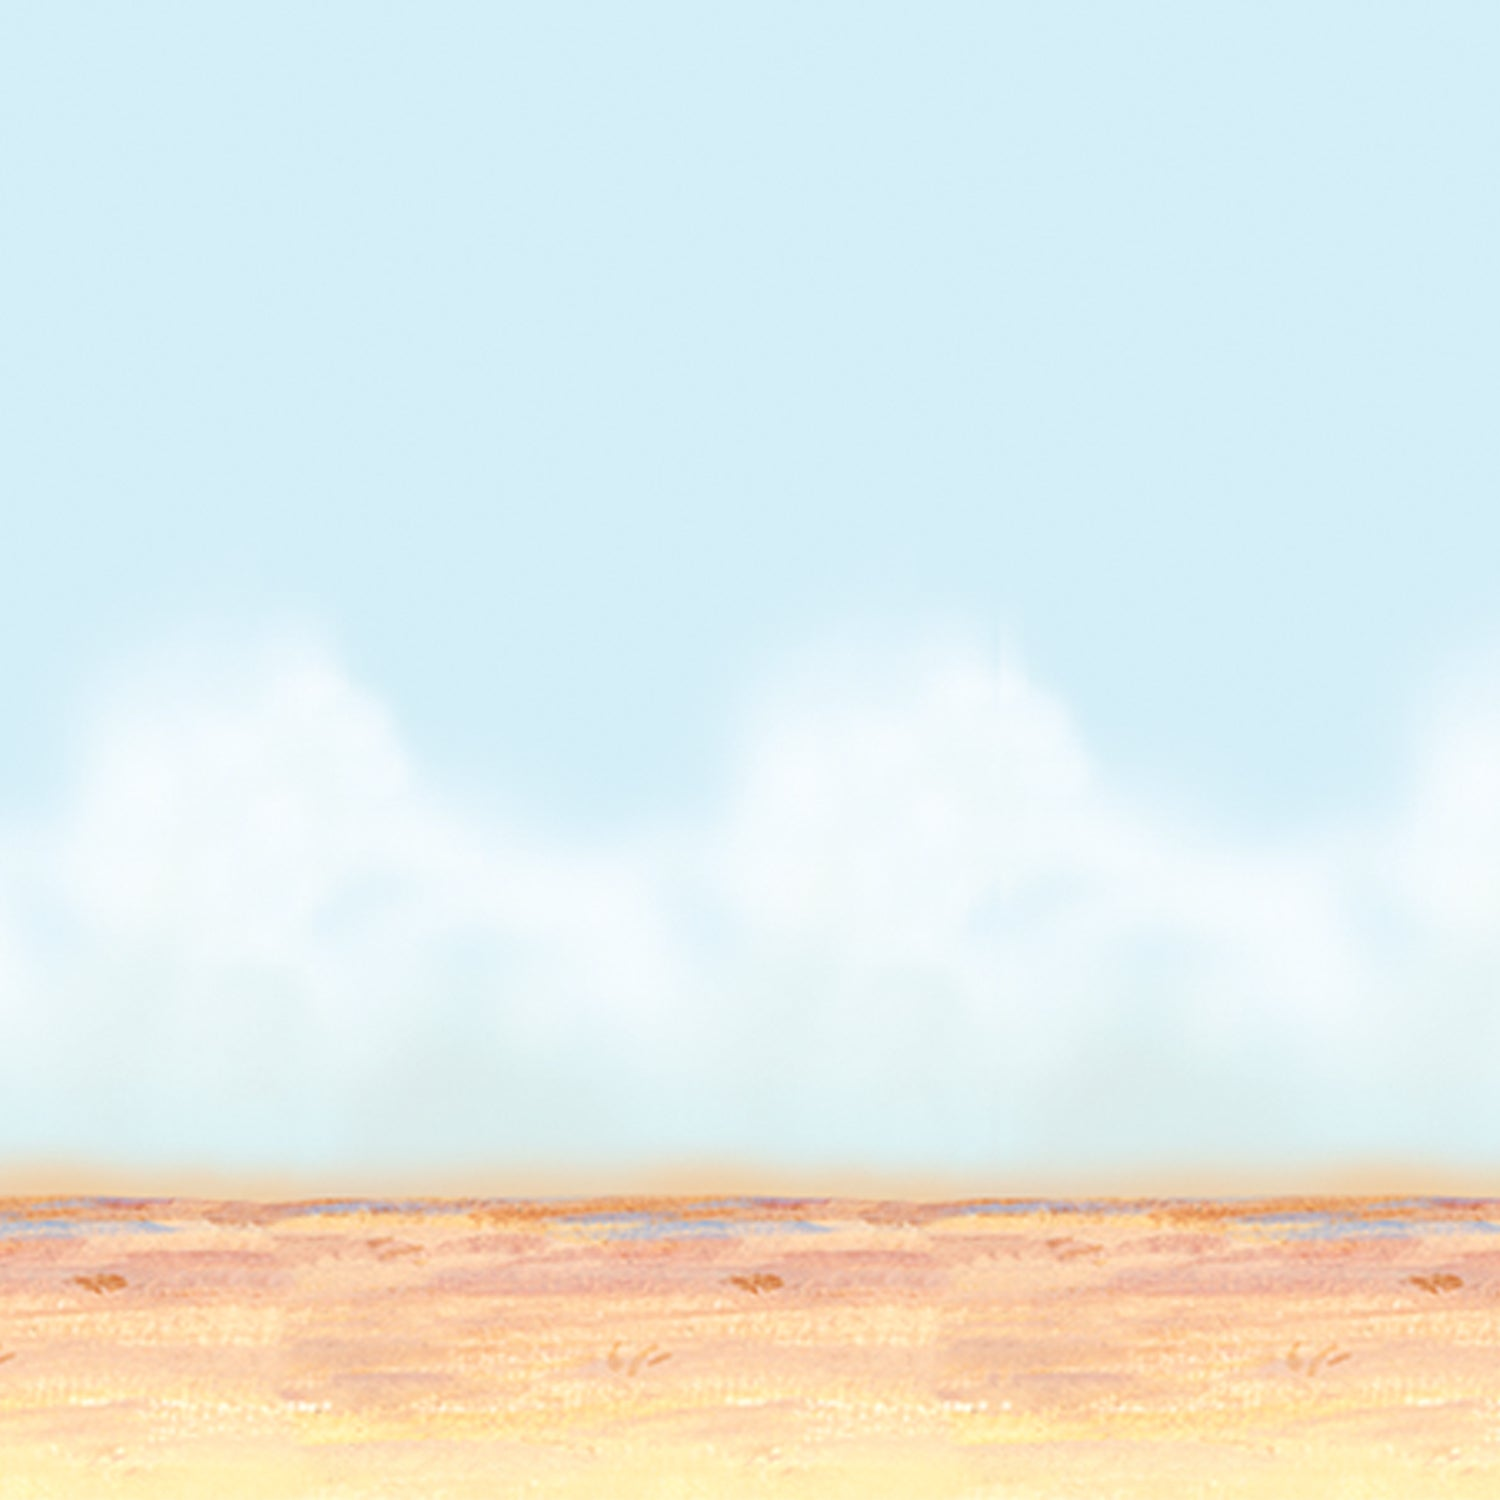 Desert Sky & Sand Backdrop by Beistle - Western Theme Decorations